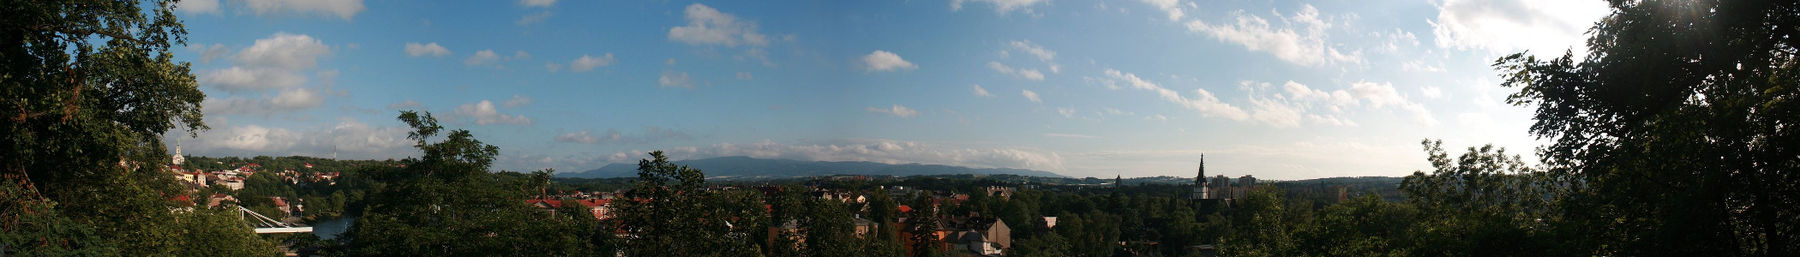 Panorama from Castle Hill Cieszyn Wikivoyage pagebanner.jpg